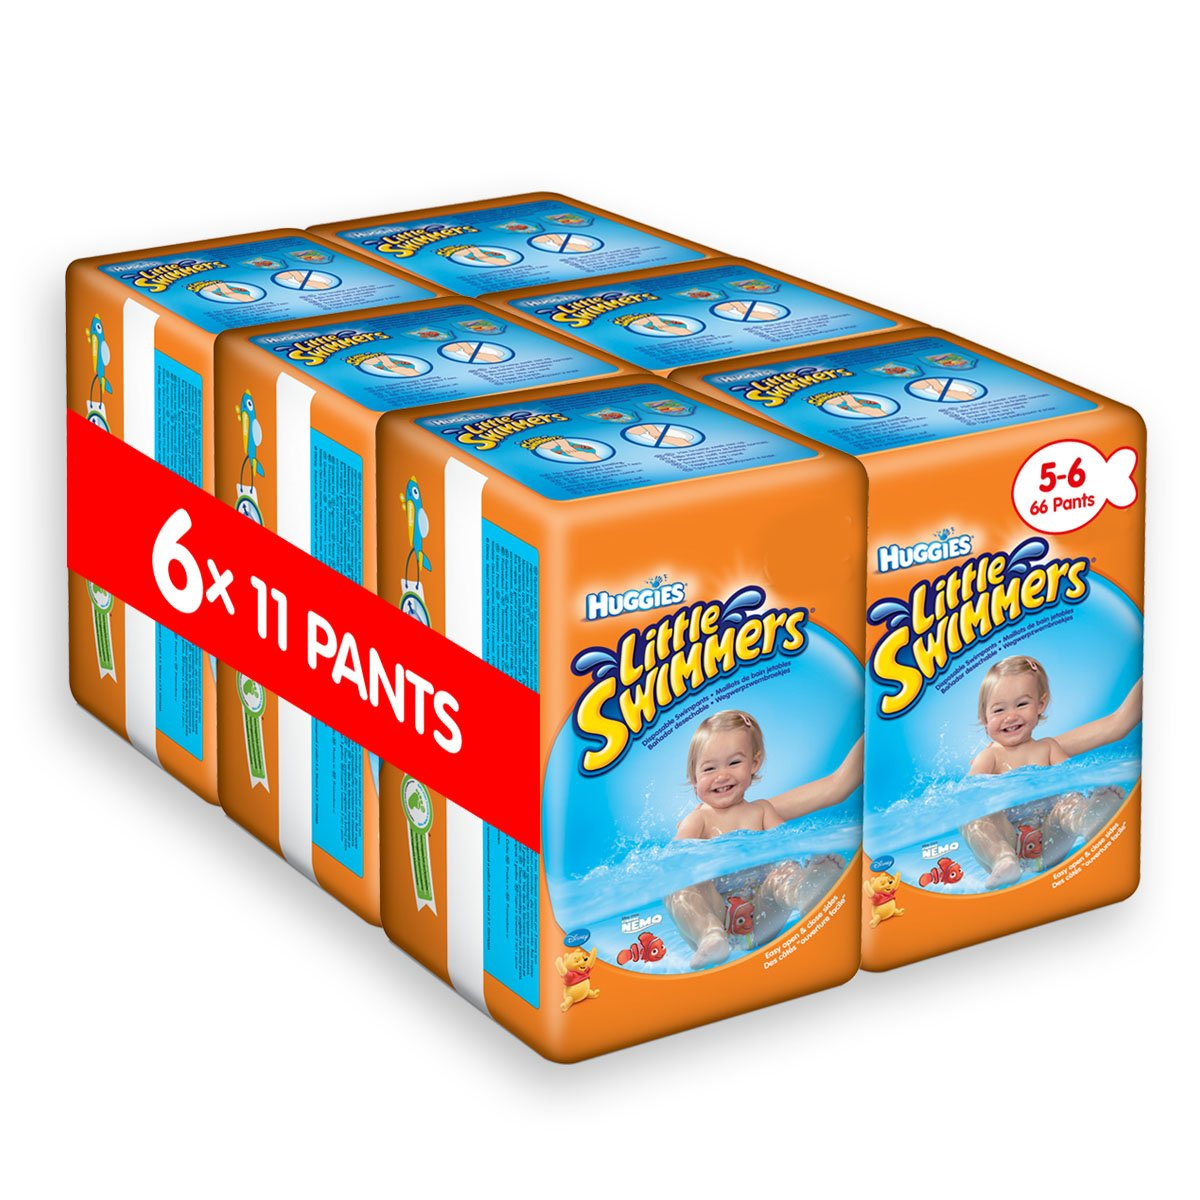 Huggies Little Swimmers Disposable Swim Nappies, Size 2-3 - 72 Nappies Total Kimberly Clark 2183381